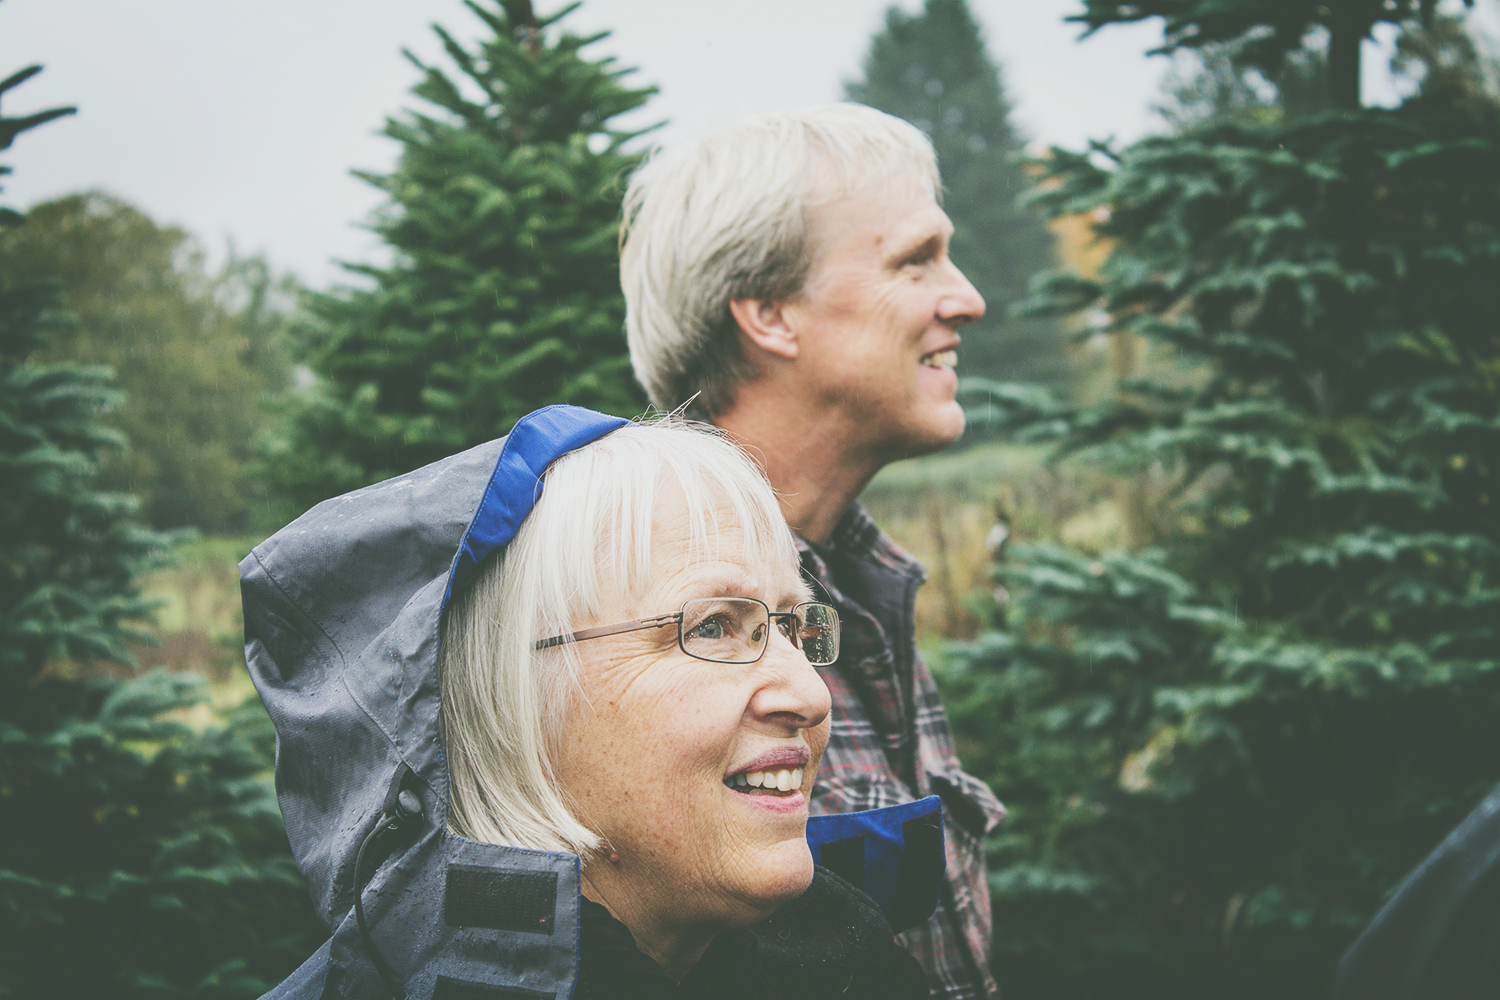 A family's love of trees